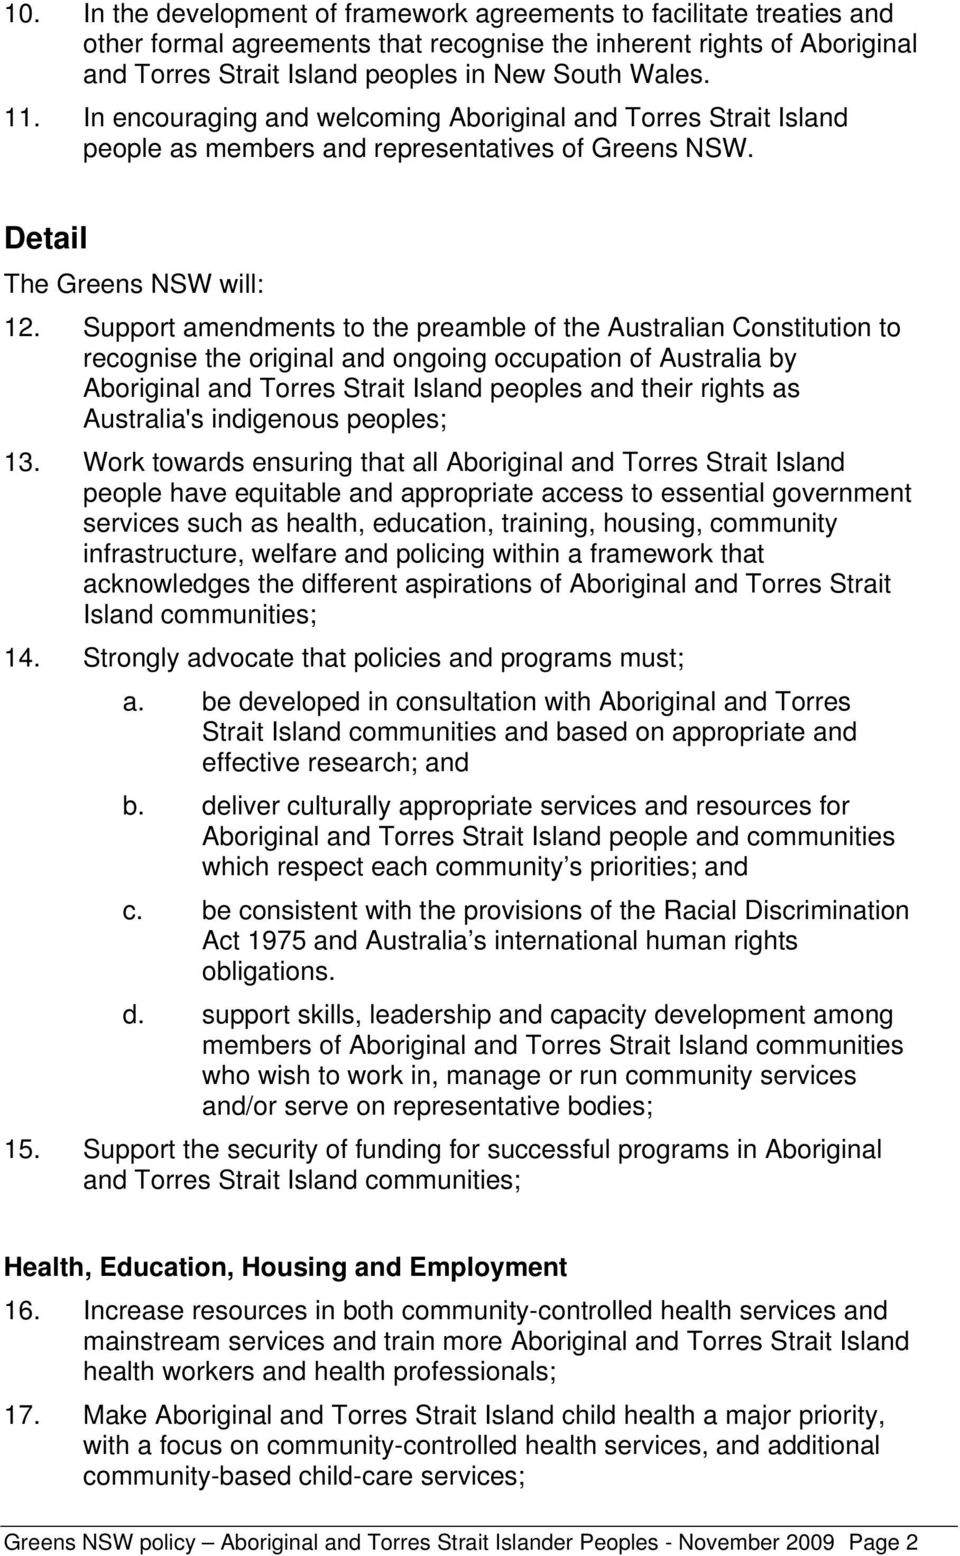 Support amendments to the preamble of the Australian Constitution to recognise the original and ongoing occupation of Australia by Aboriginal and Torres Strait Island peoples and their rights as